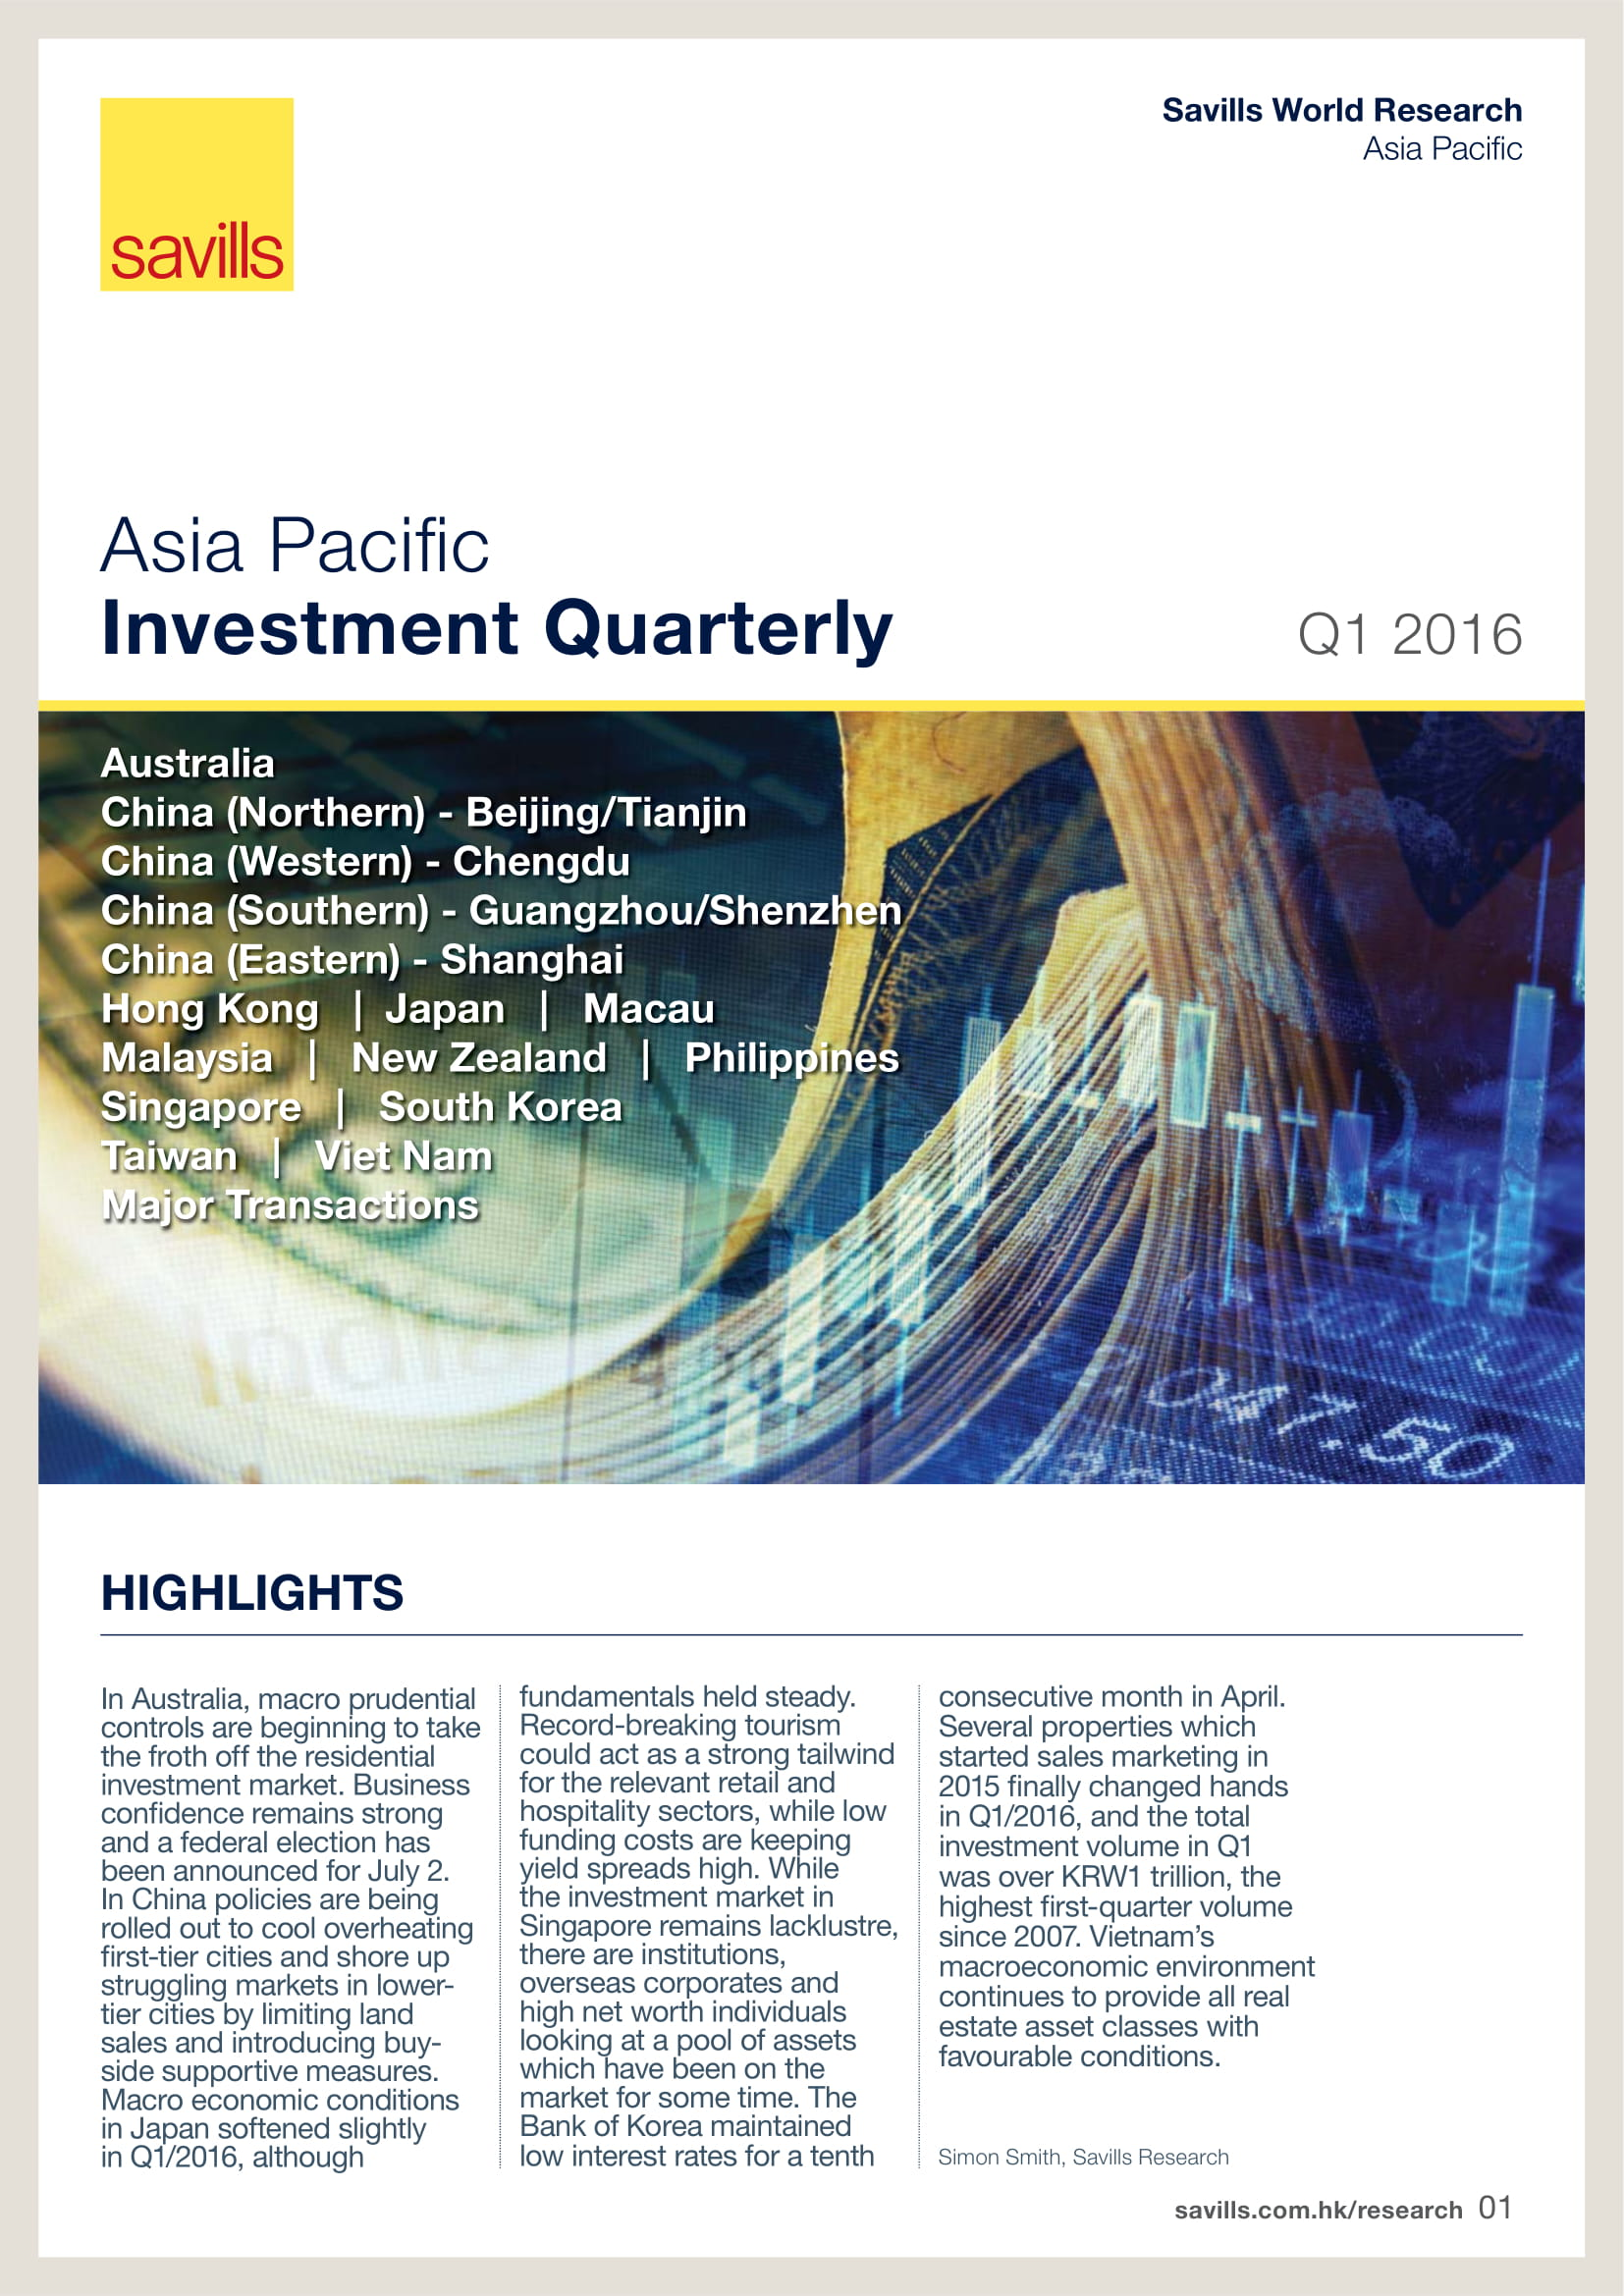 Asia Pacific Investment Quarterly Q1 2016